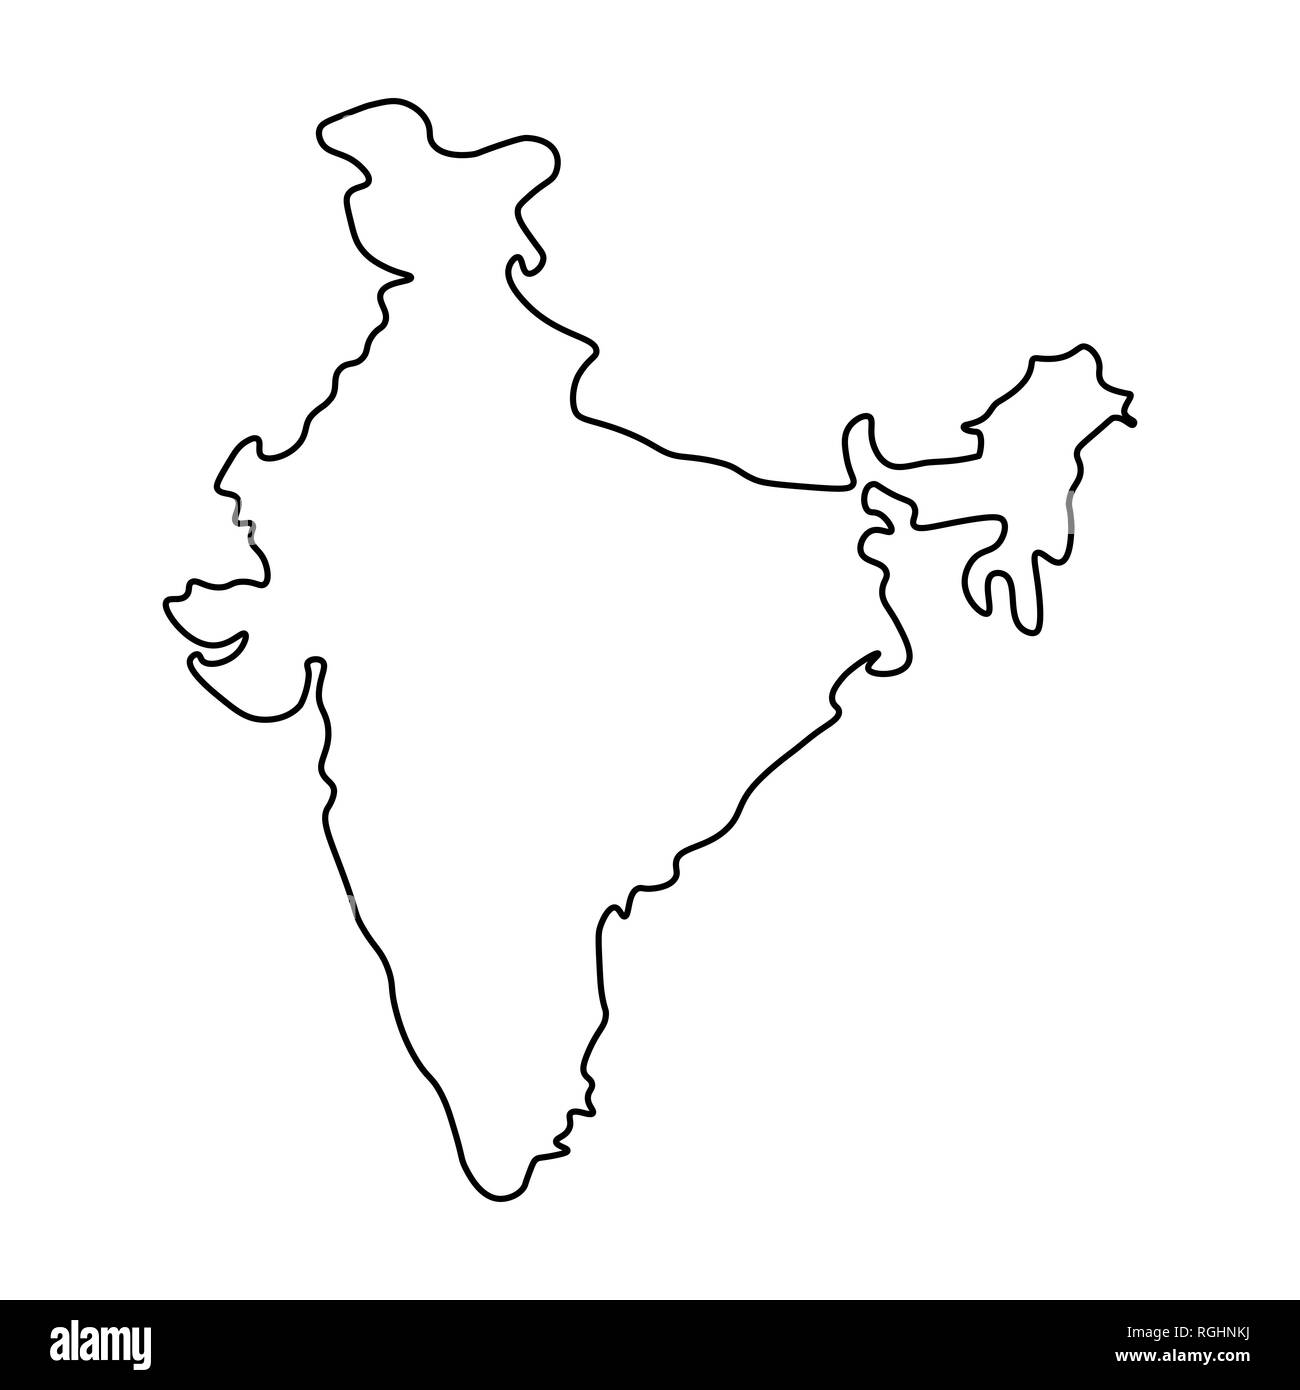 outline picture of indian map India Map Outline High Resolution Stock Photography And Images Alamy outline picture of indian map